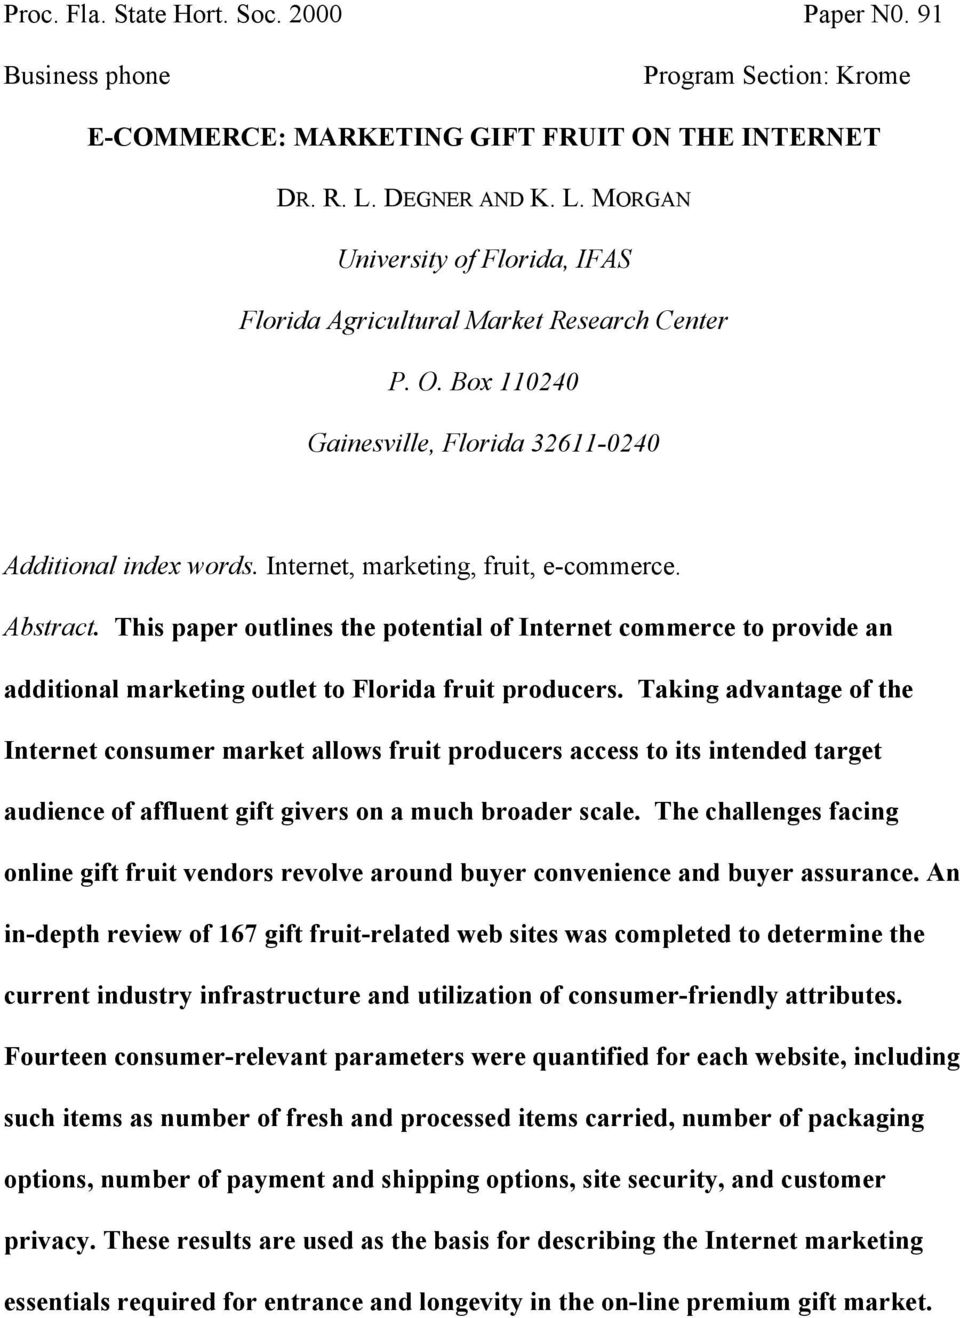 Internet, marketing, fruit, e-commerce. Abstract. This paper outlines the potential of Internet commerce to provide an additional marketing outlet to Florida fruit producers.